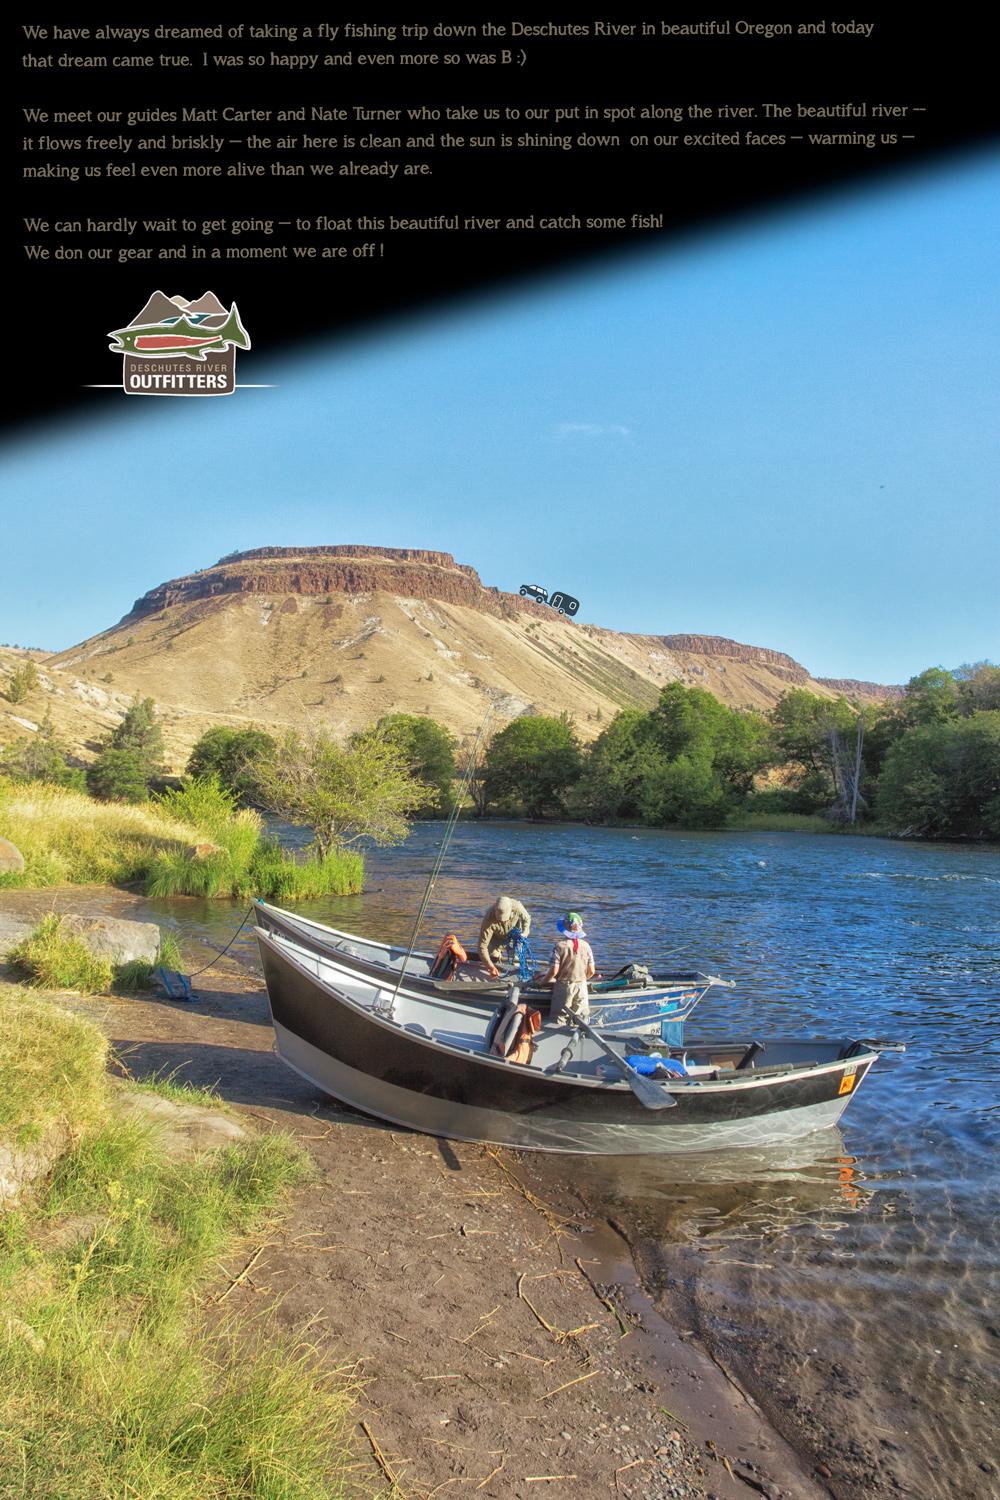 Fishing on the Deschutes River with Matt Carter and Nate Turner with Deschutes River Outfitters via J5MM.com